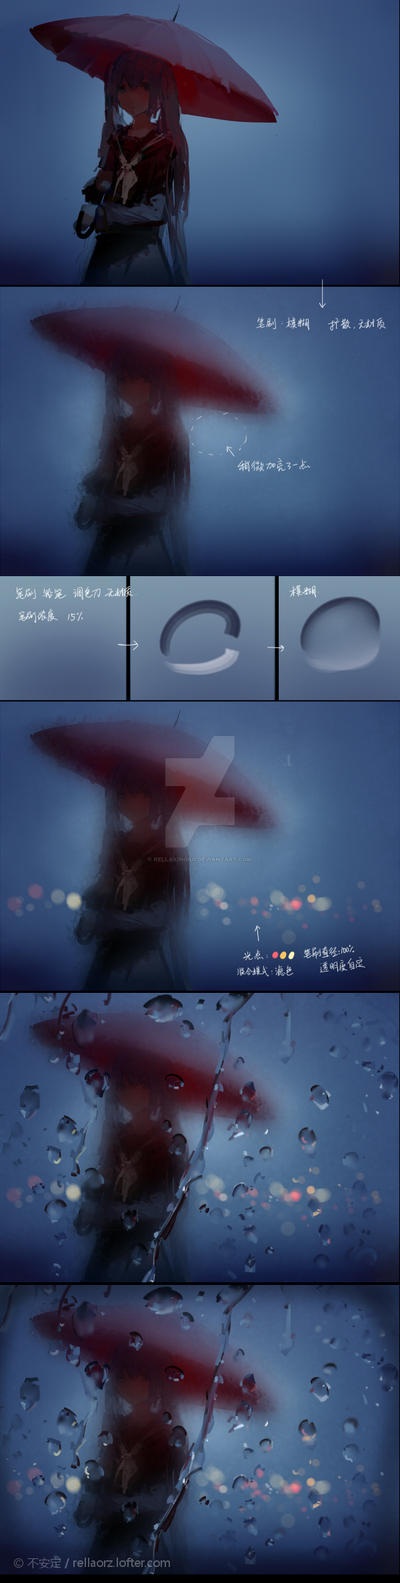 Tutorial - Color effects and rain by Rellakinoko